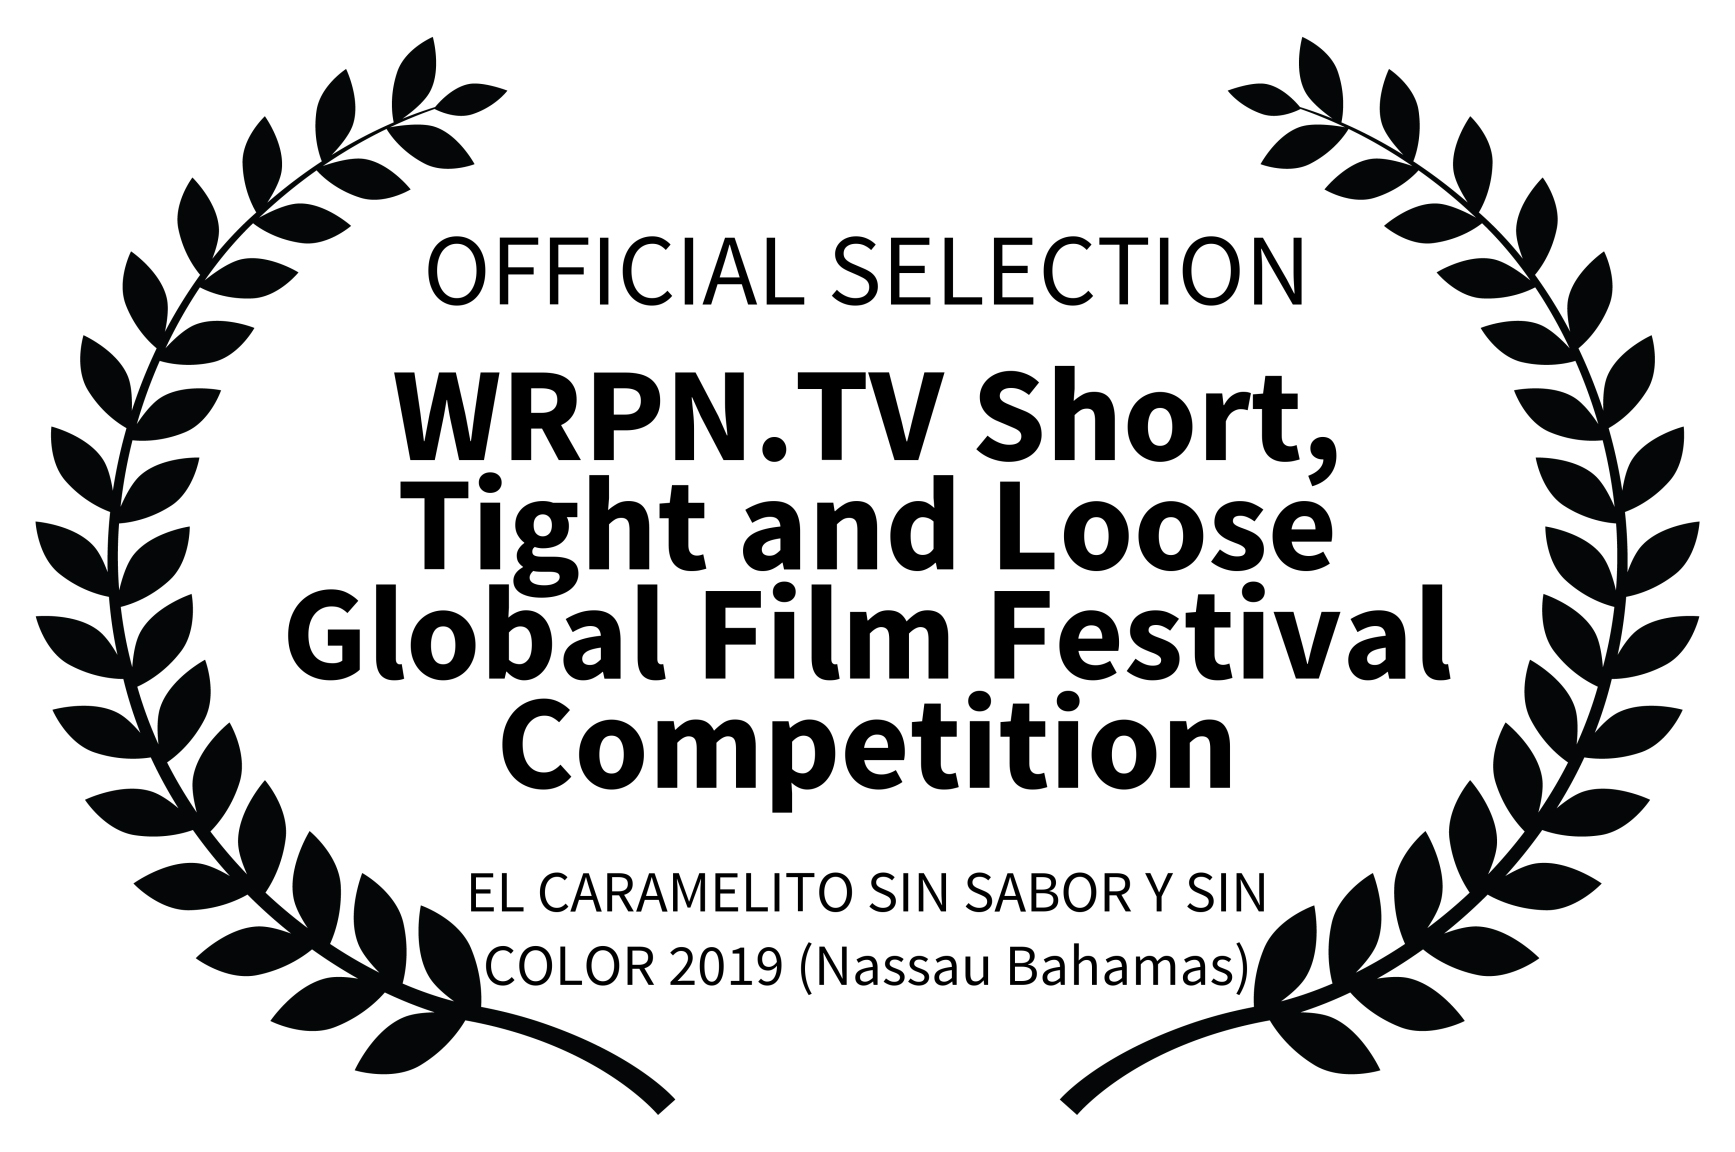 OFFICIAL SELECTION - WRPN